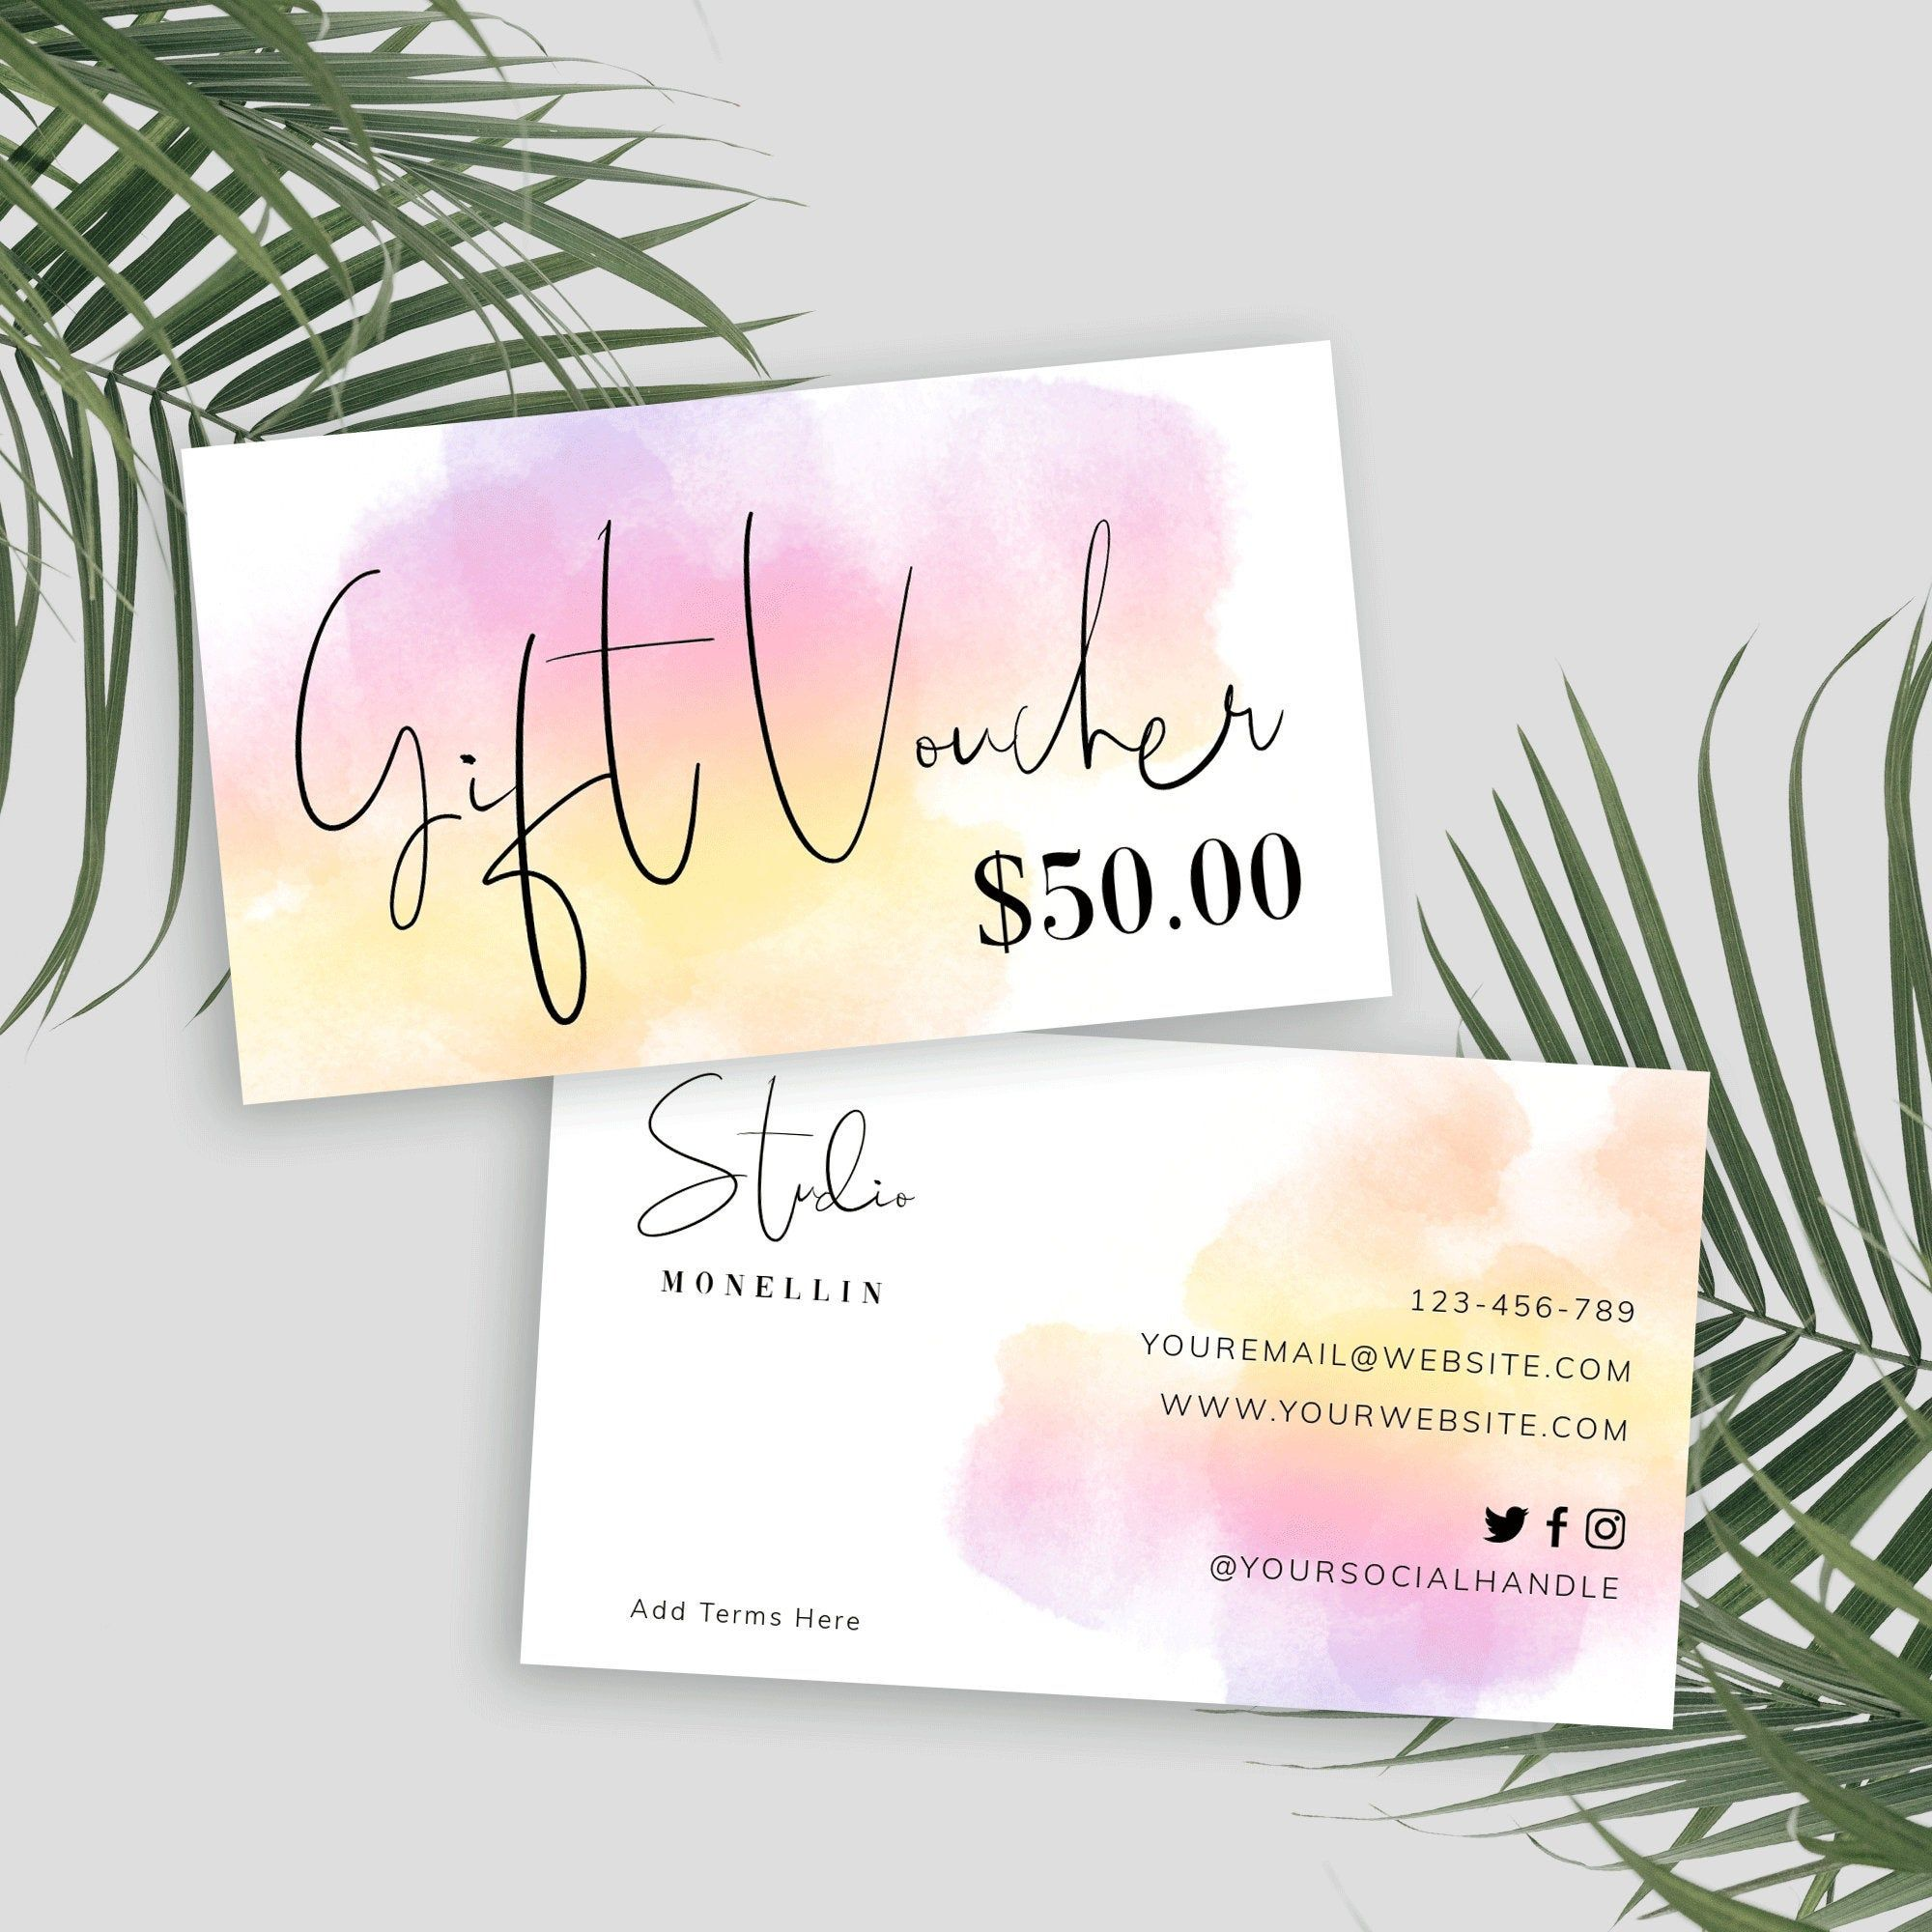 Mini Gift Voucher Template Printable Gift Card Design Etsy In 2020 Printable Gift Cards Gift Card Design Gift Card Template